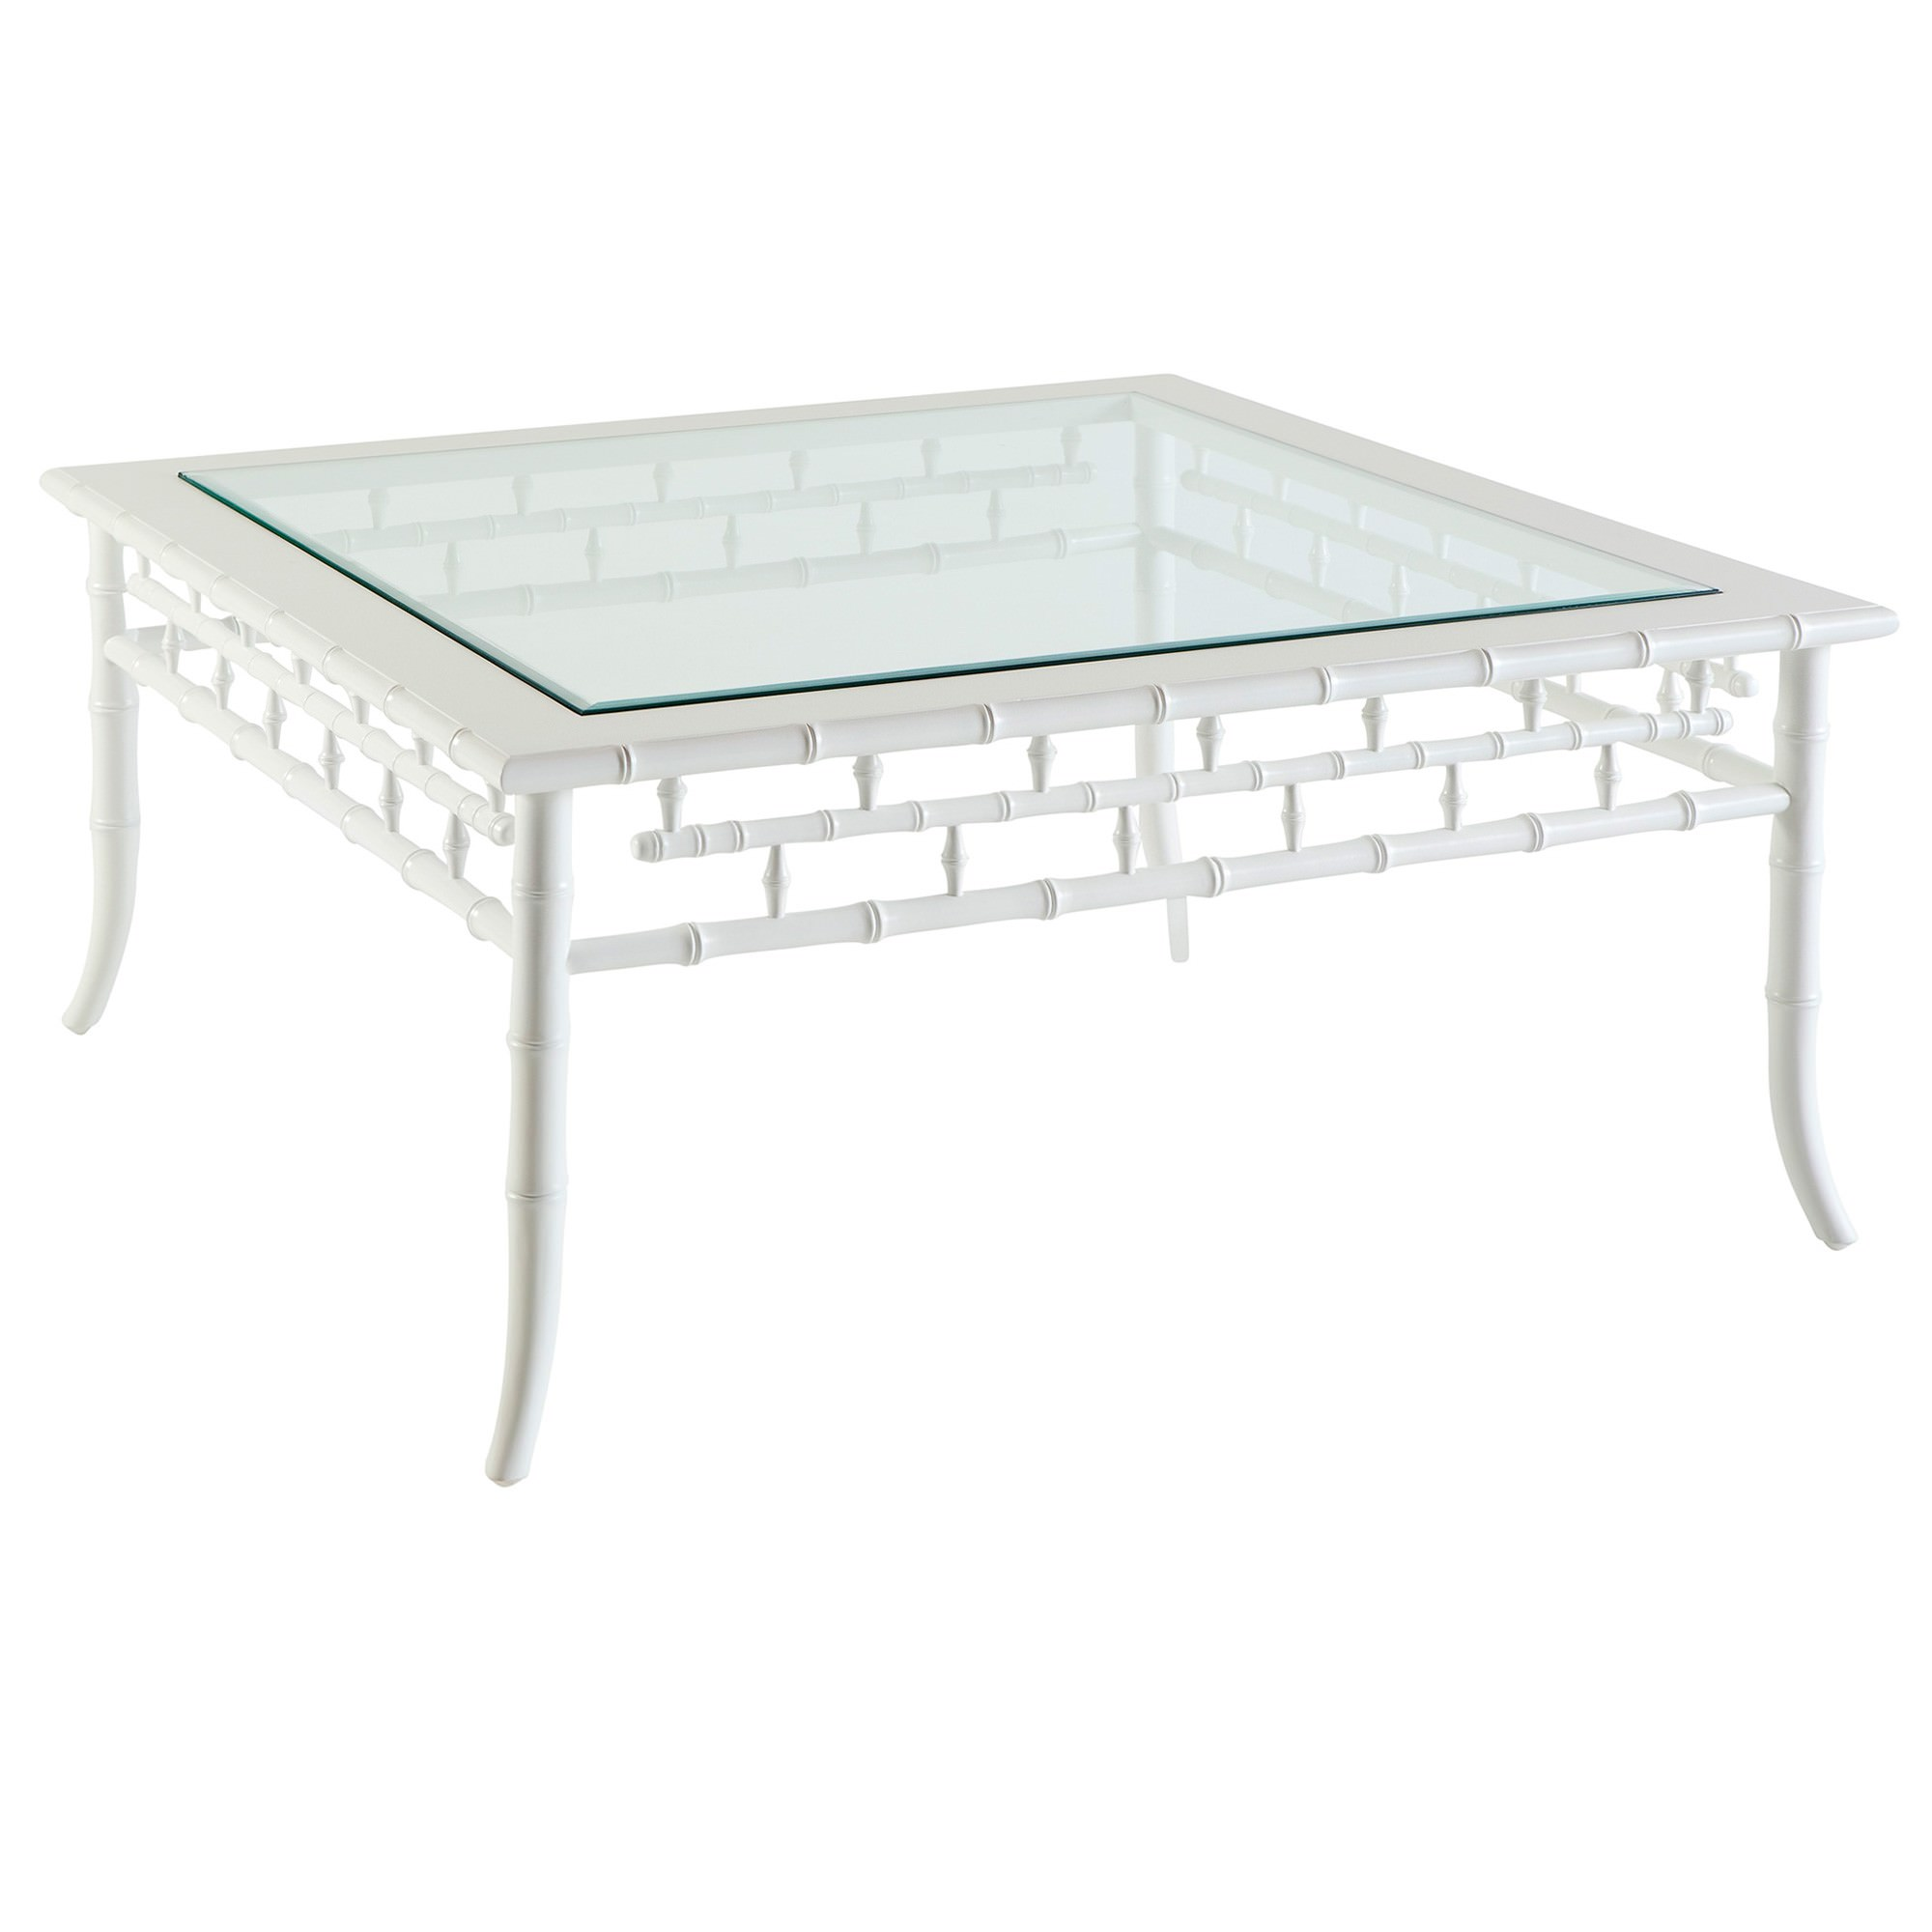 Floria Quays Glass Topped Mahogany Timber Coffee Table, 100cm, White